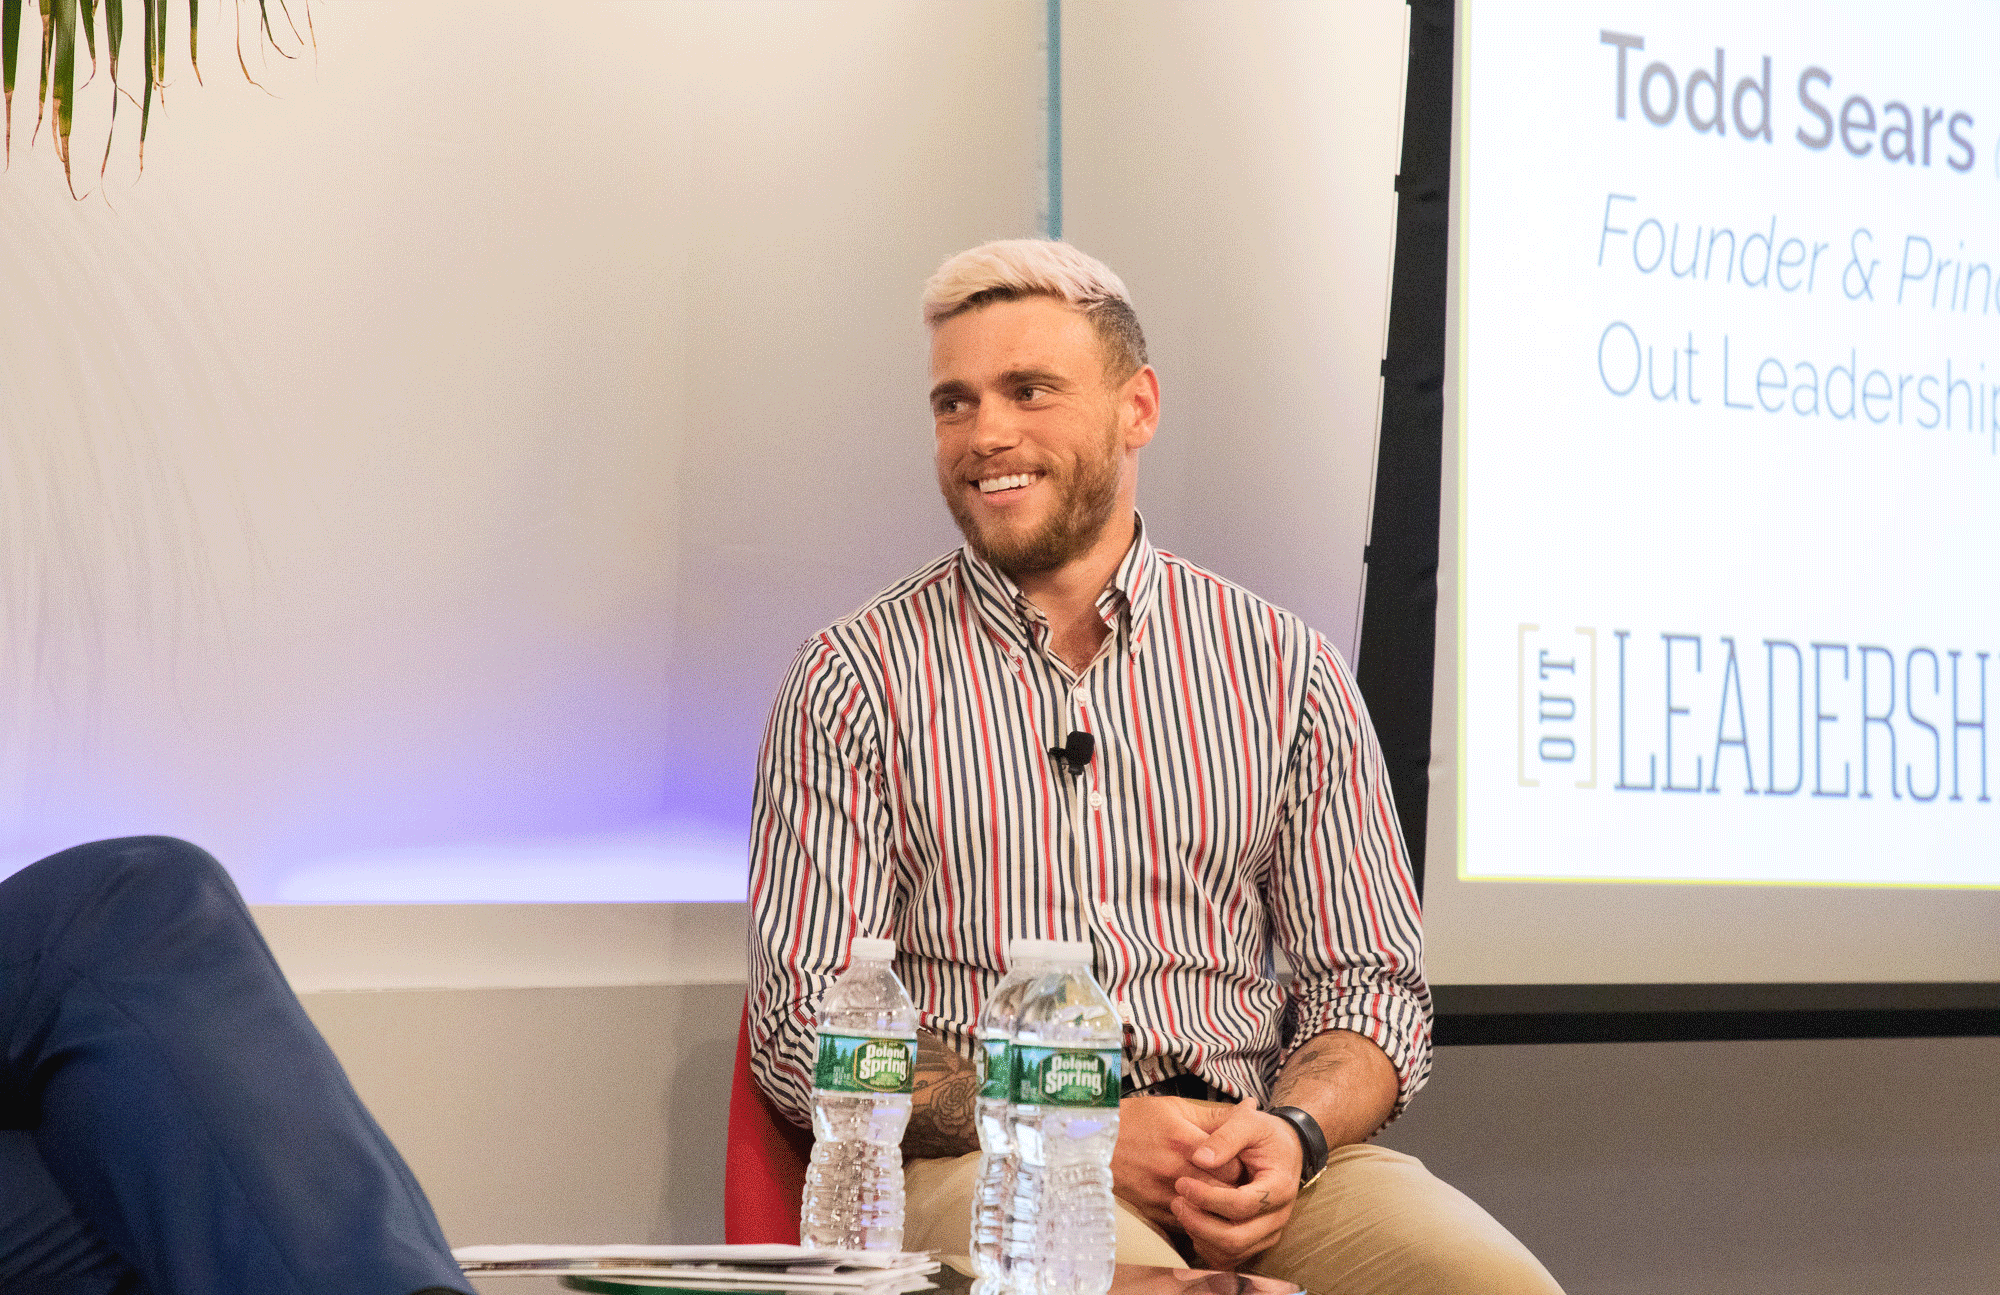 LGBT+ Olympic Medalist Gus Kenworthy and Todd Sears on the power of authenticity